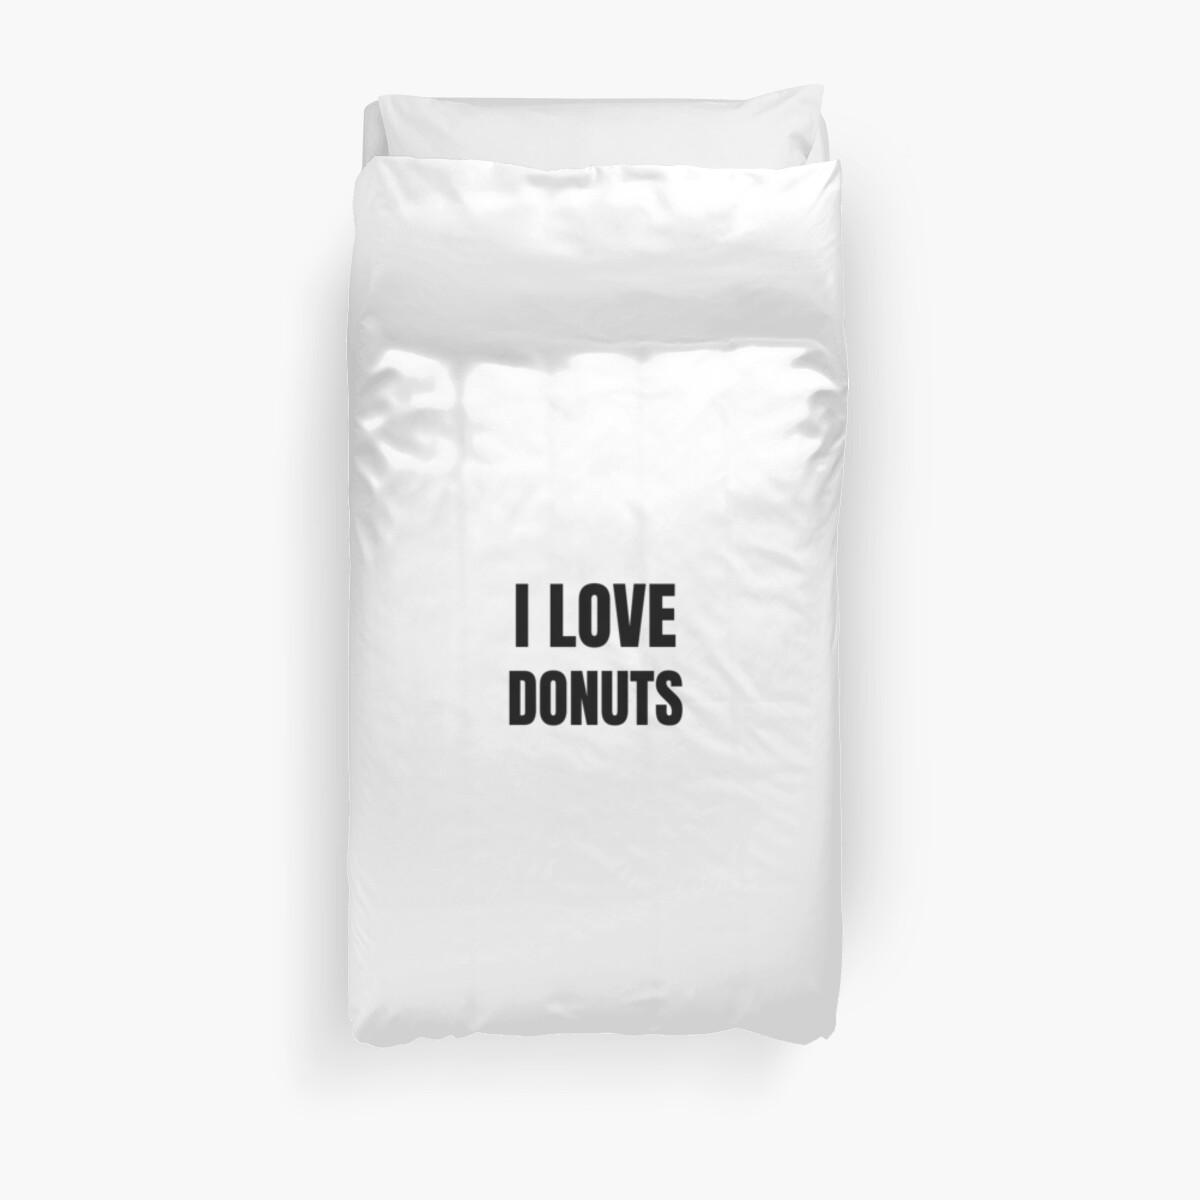 I Love Donuts Funny Gift Idea by FunnyGiftIdeas